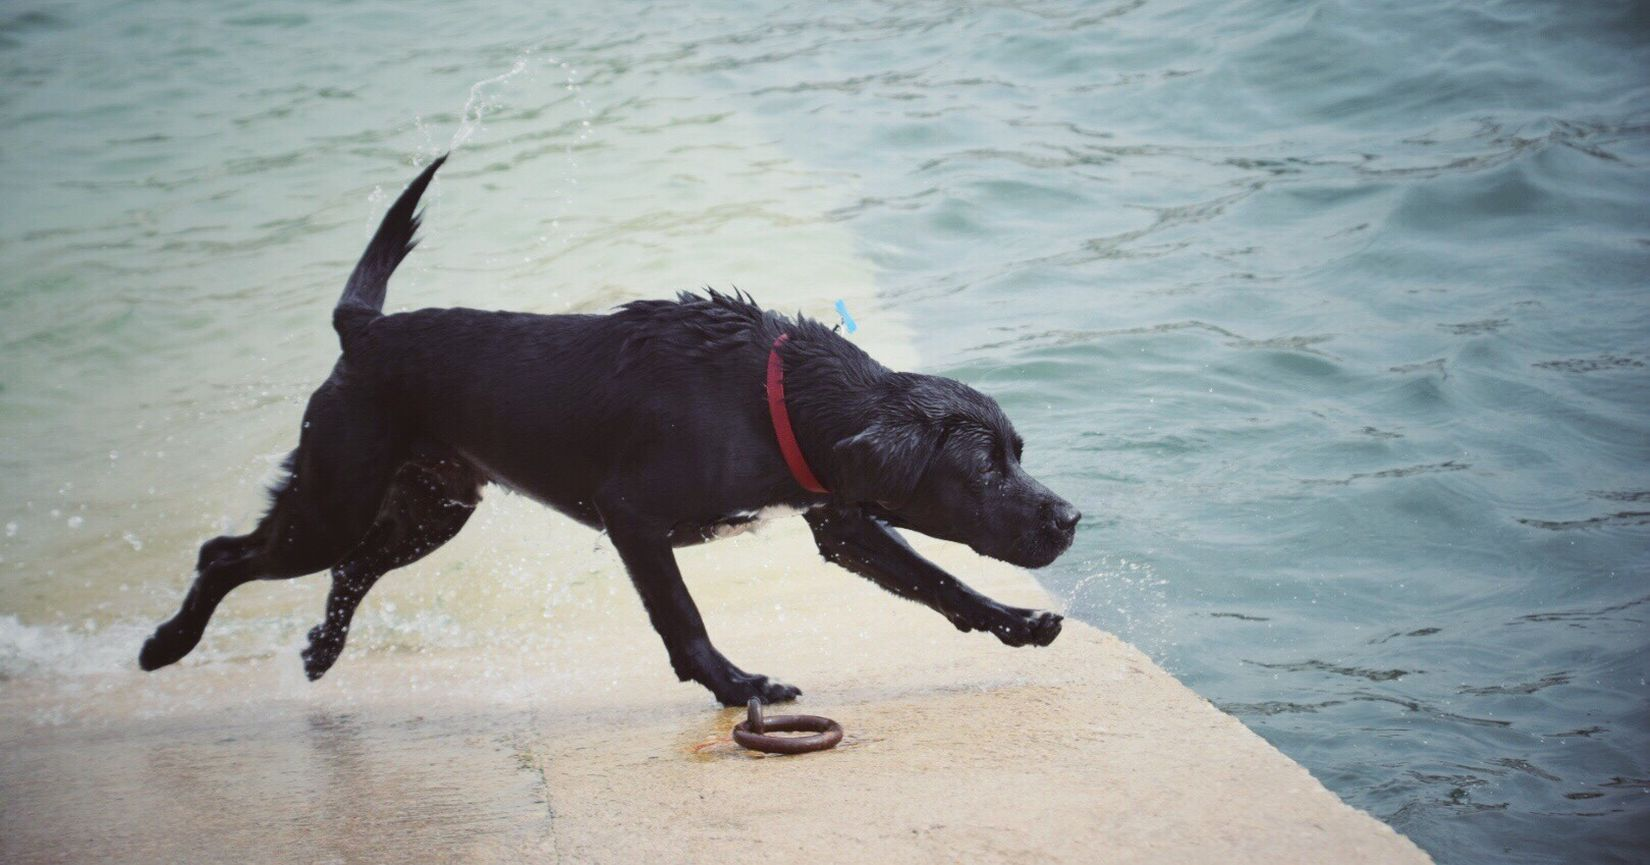 Ready...steady... Dog Pets One Animal Animal Themes Domestic Animals Mammal Wet Black Labrador Water Playing Black Color Pet Collar No People Labrador Retriever Full Length Outdoors Beach Day Nature Kernow Black Labrador St Mawes Harbour Sea Swimming Cornwall Uk